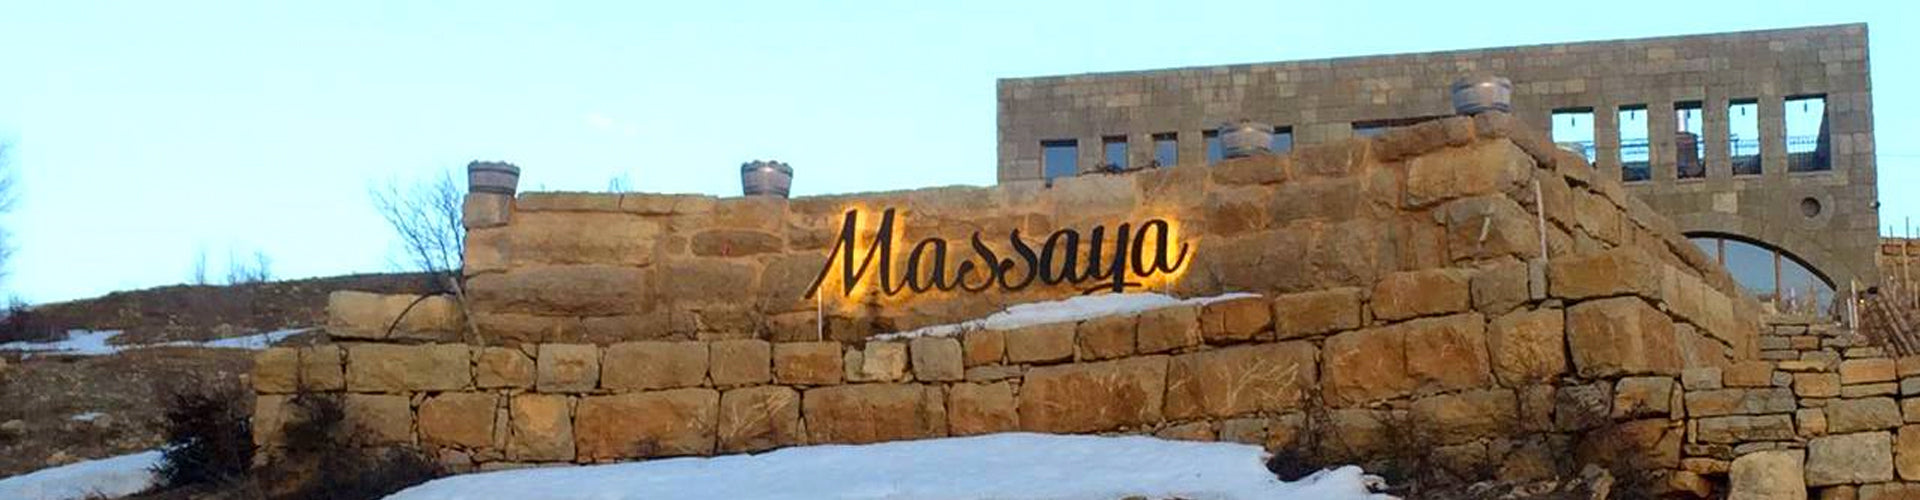 Massaya New Winery Building Lebanon